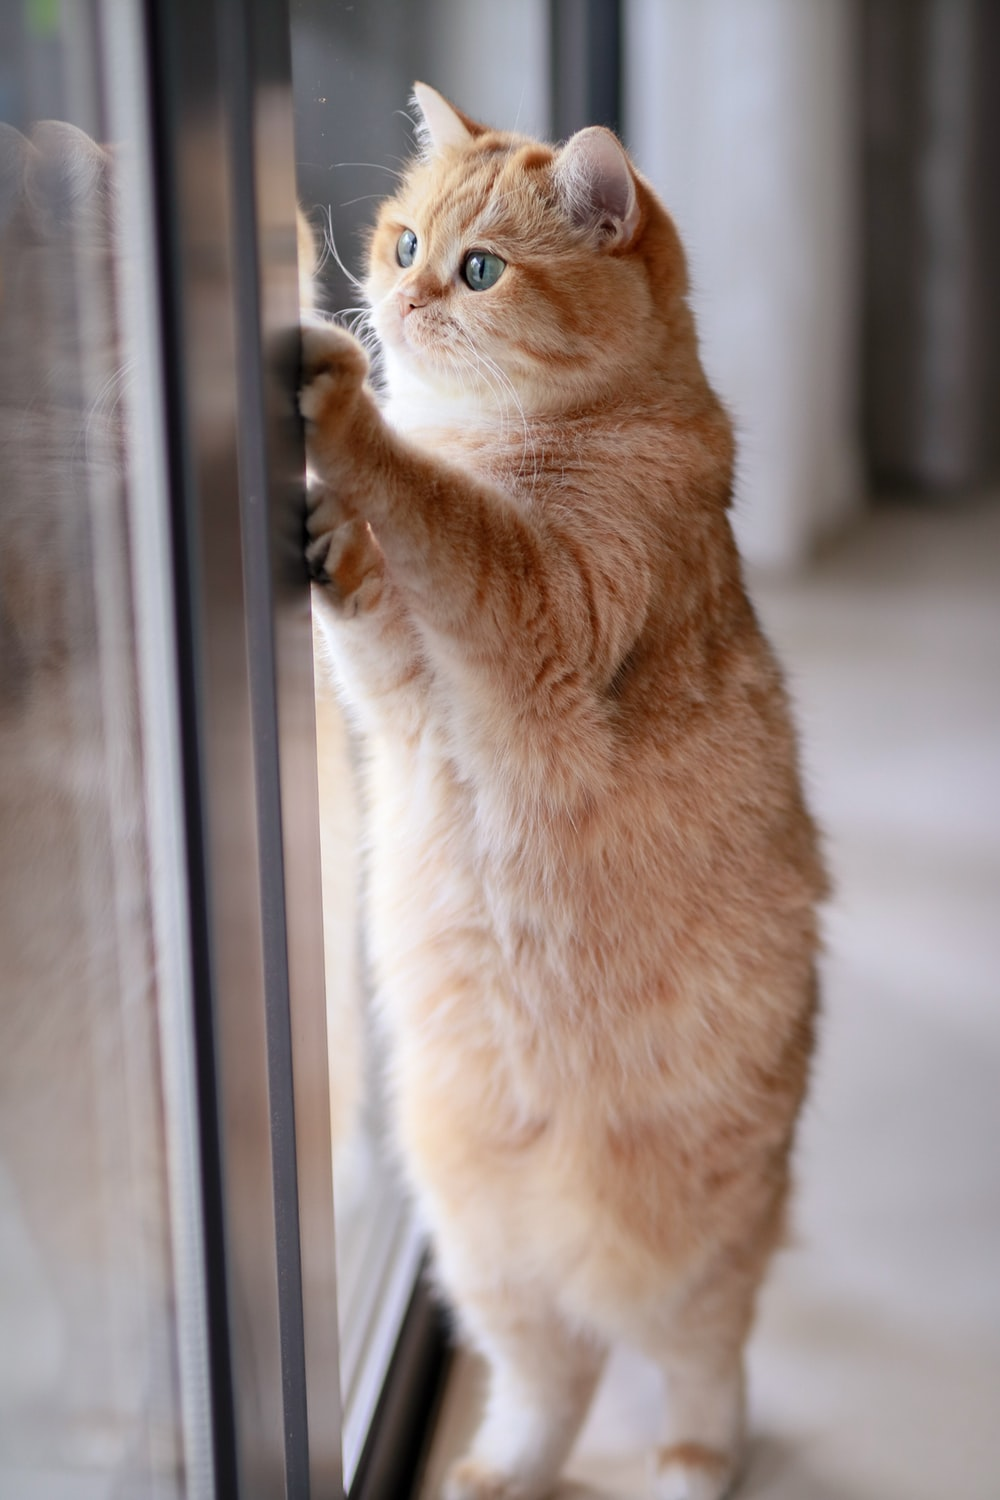 orange tabby cat leaning on glass slide door